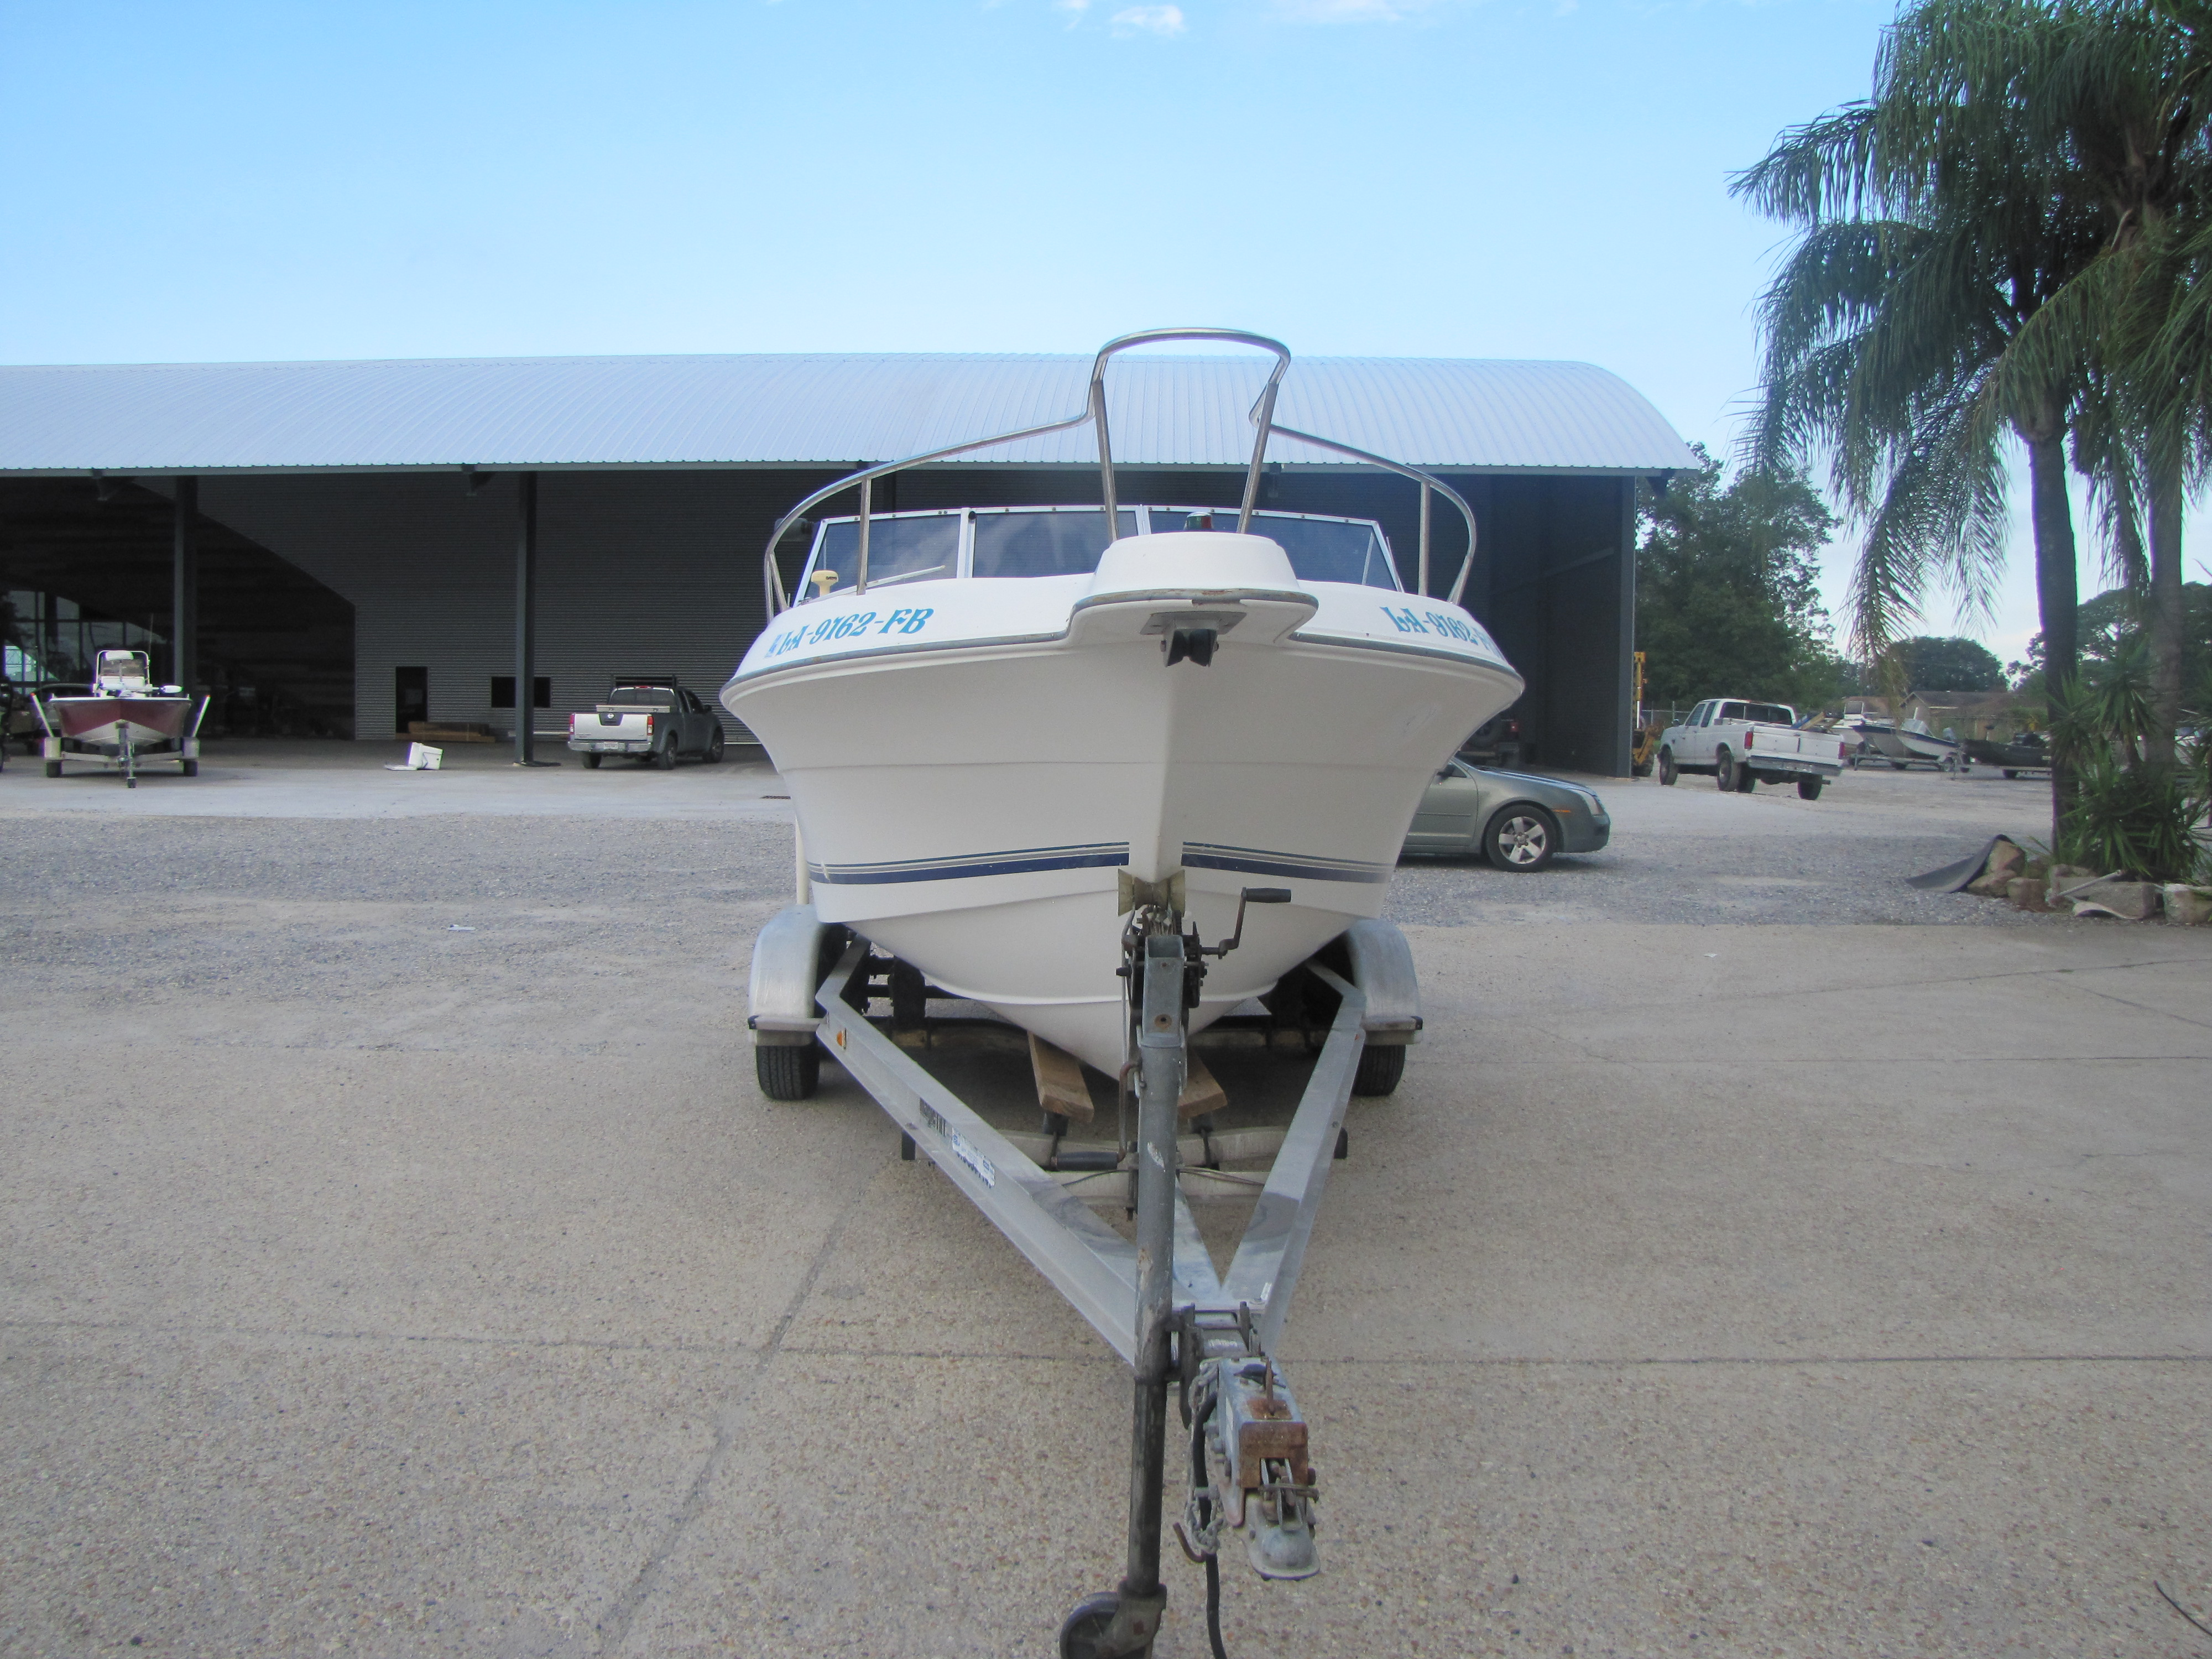 2000 Aquasport boat for sale, model of the boat is 215 Osprey Sport & Image # 21 of 21